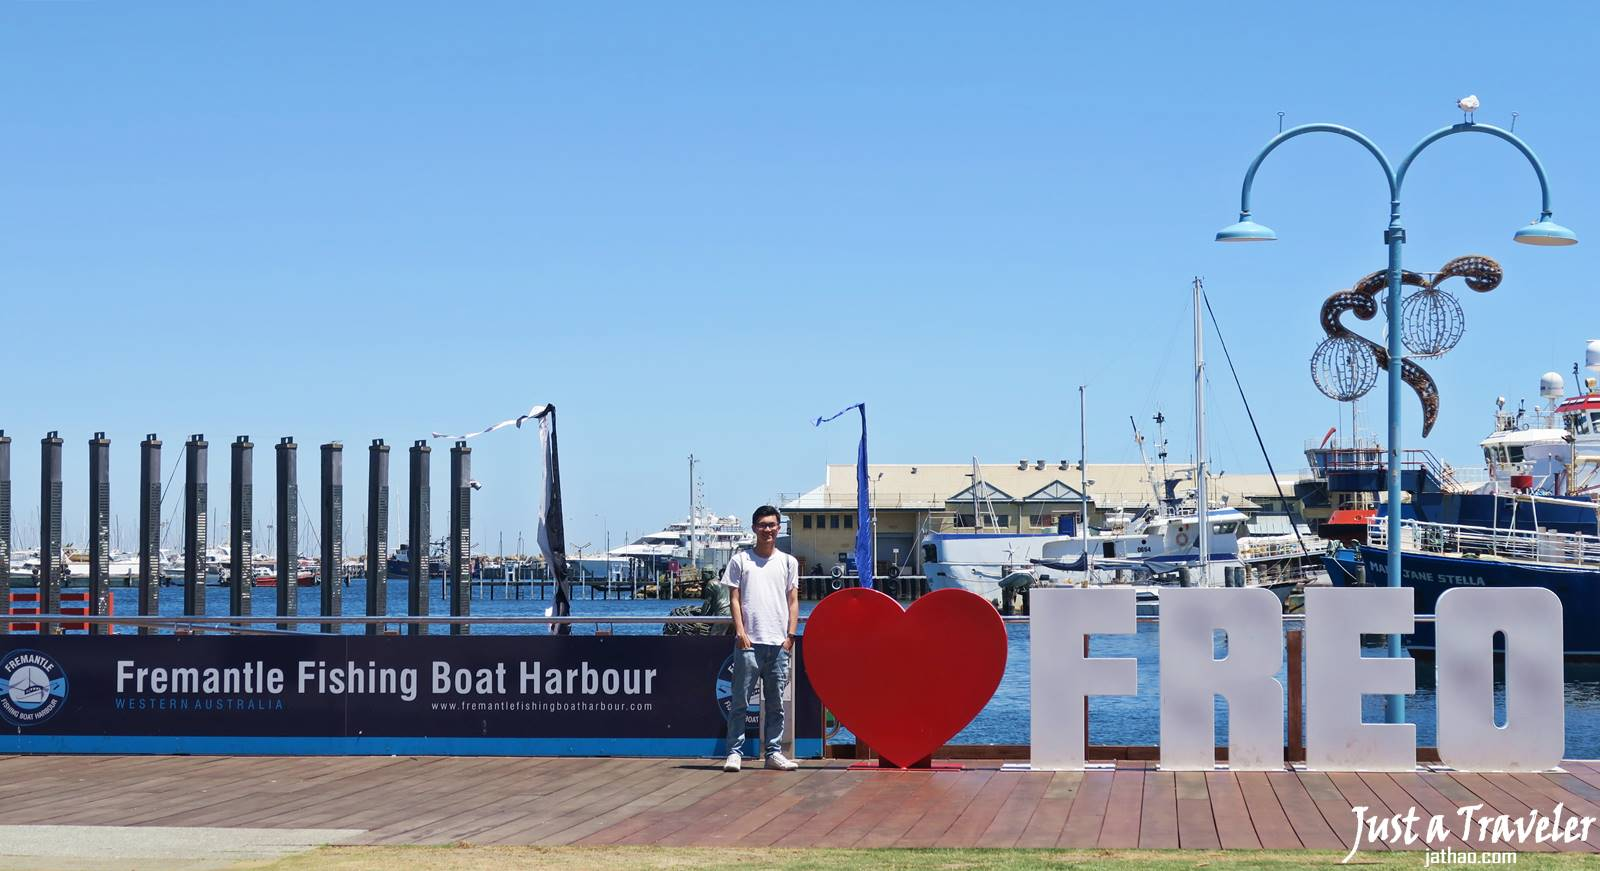 伯斯-推薦-景點-費里曼圖-Fremantle-漁船碼頭-Fishing-Boat-Harbour-自由行-交通-必去-必玩-美食-旅遊-行程-一日遊-遊記